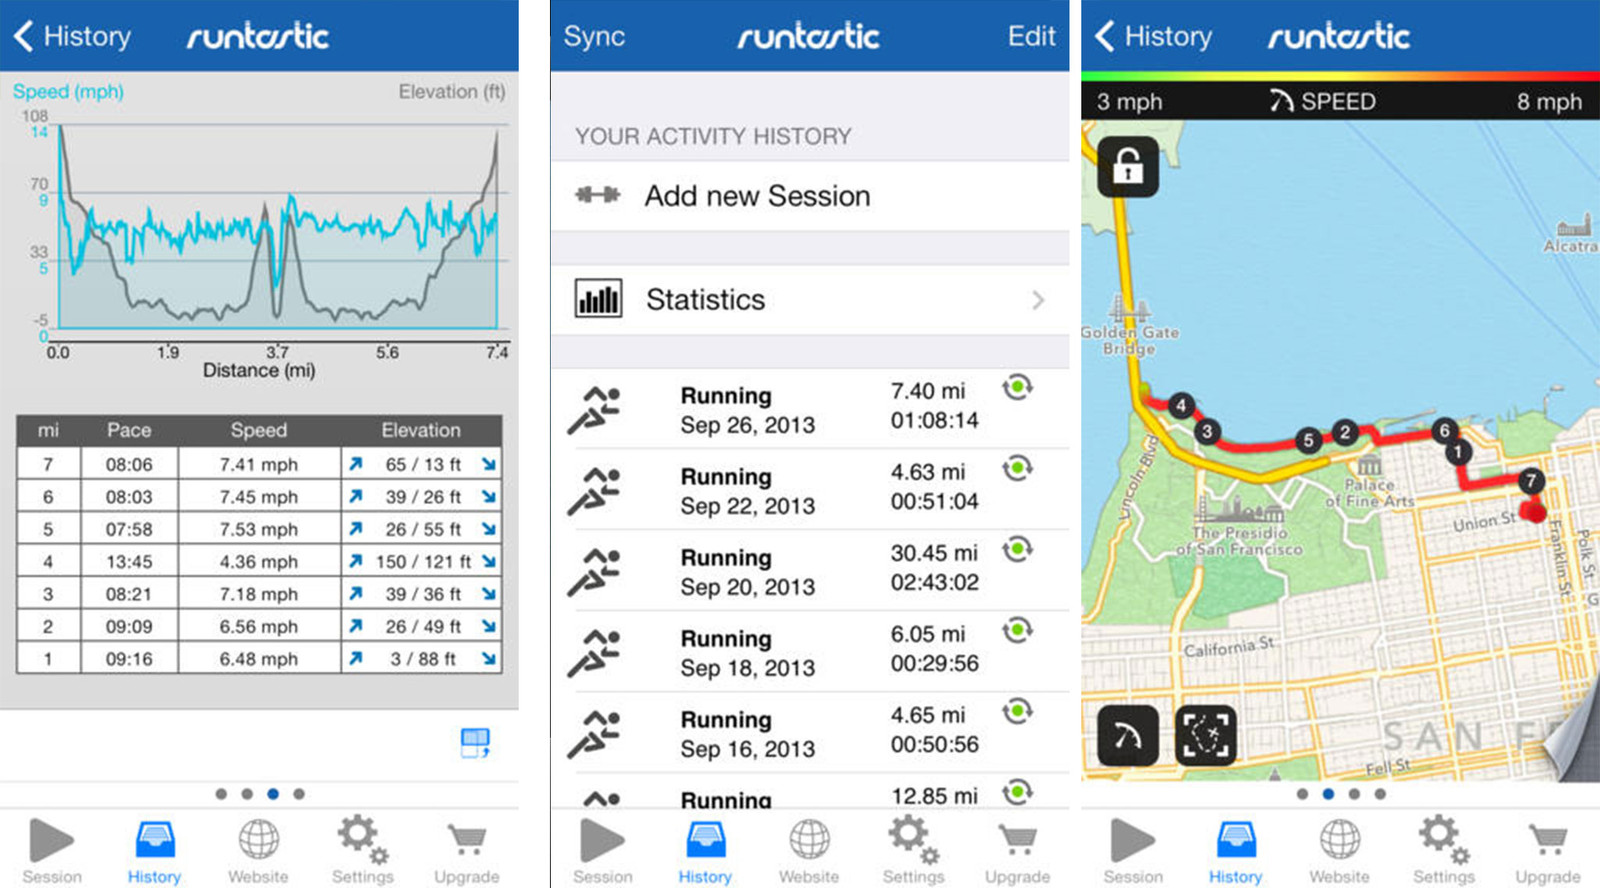 Best run tracking apps for iPhone: Runtastic